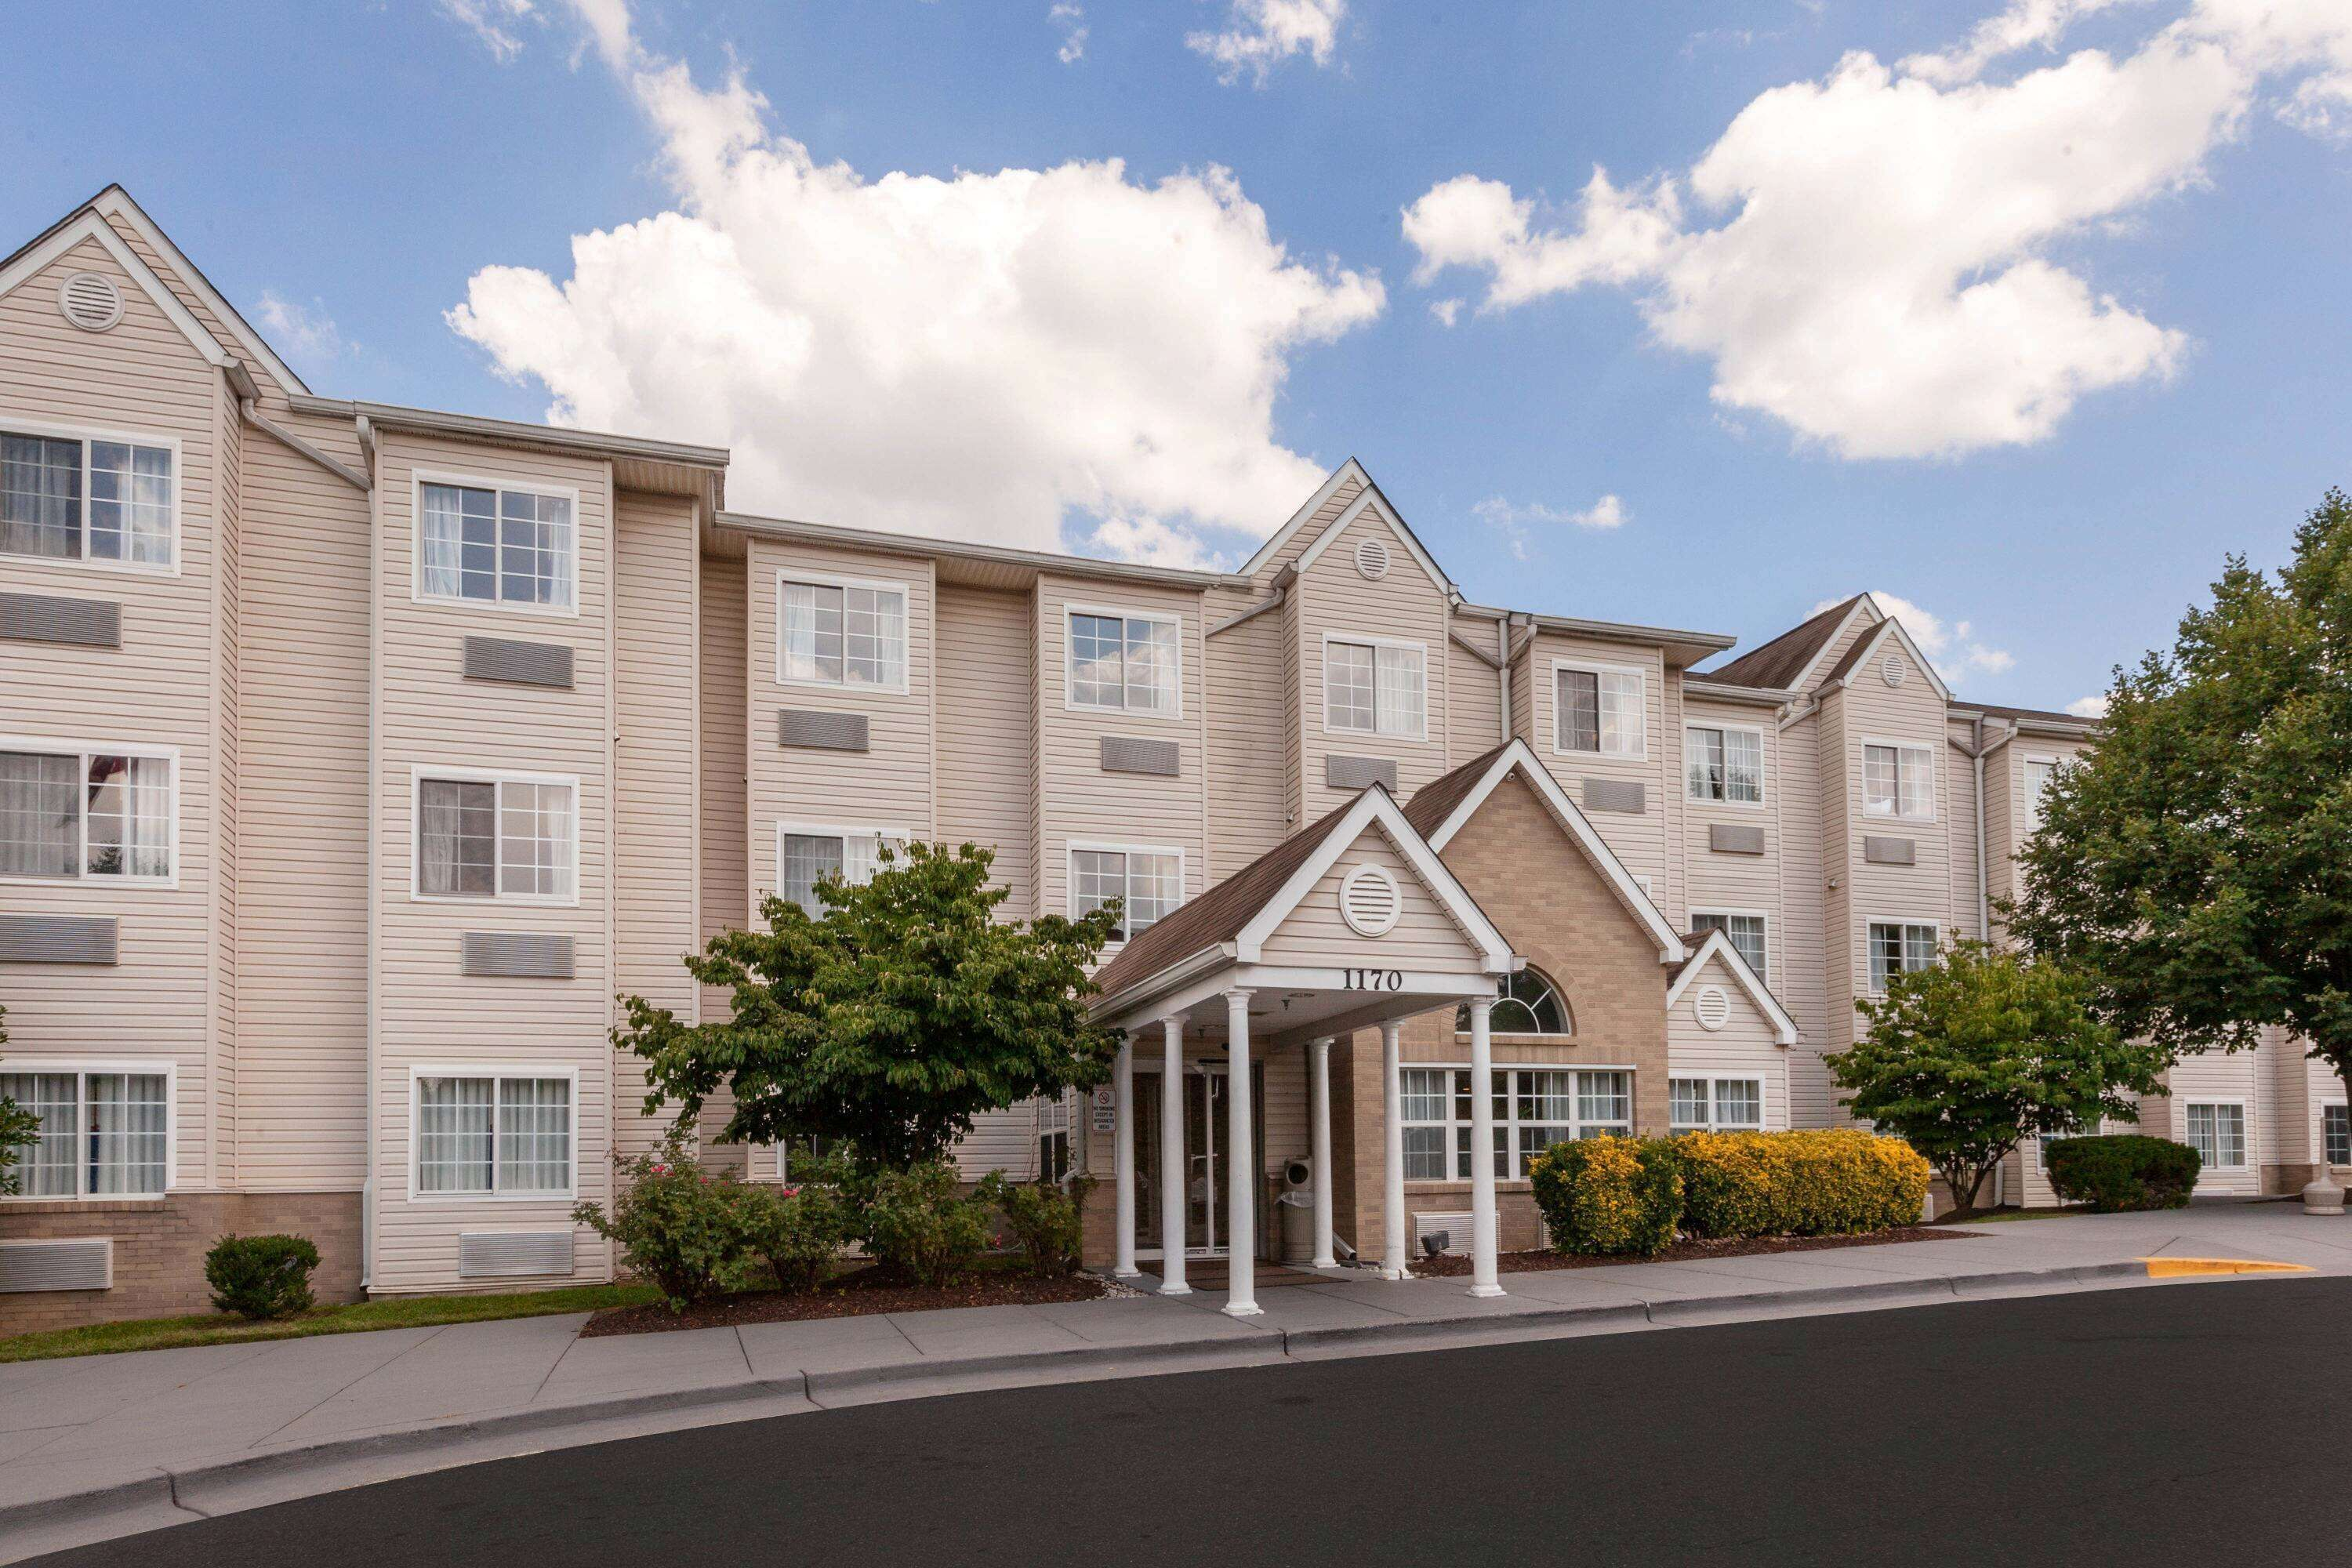 Microtel Inn & Suites Linthicum BWI Airport